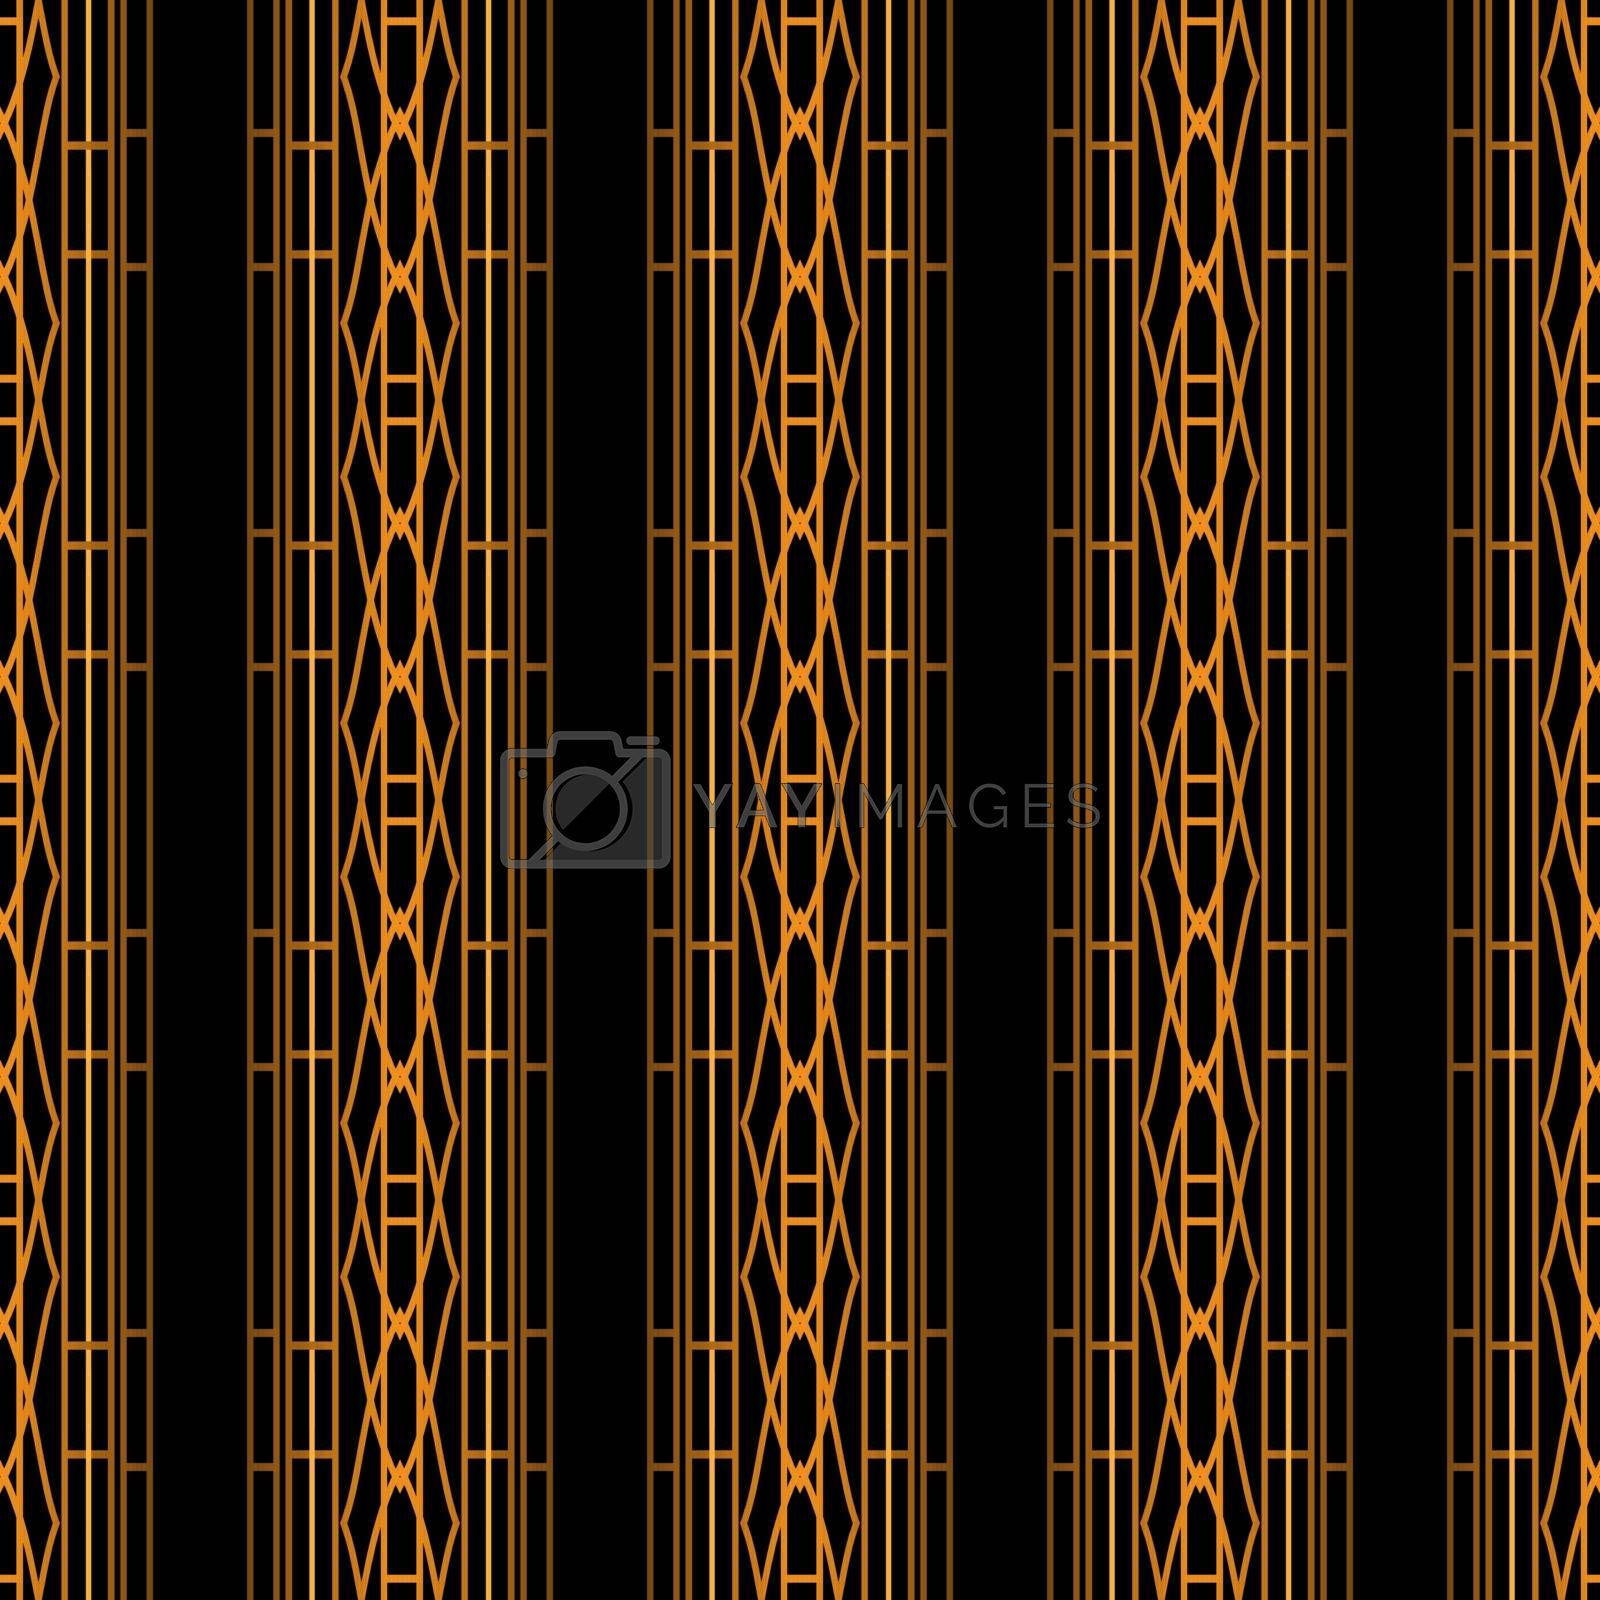 old fashioned elegant geometric black and gold ornament or wallpaper pattern